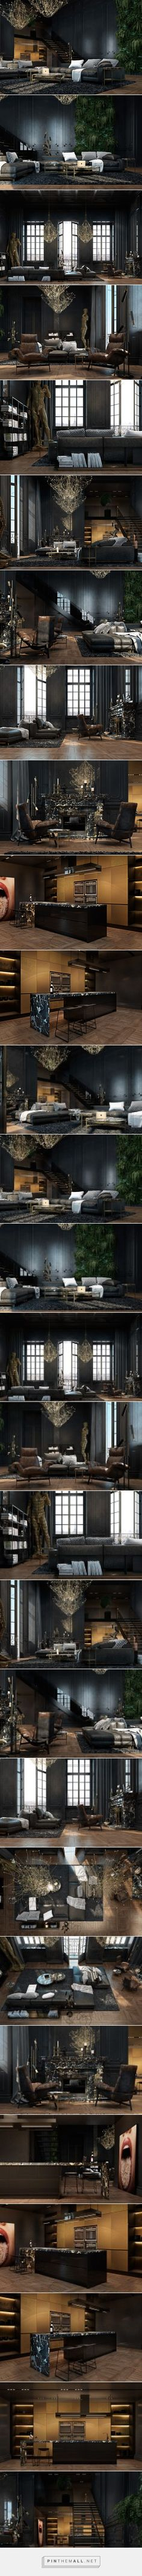 Luxury Apartment Archives - Page 6 of 10 - Luxury Home Decor